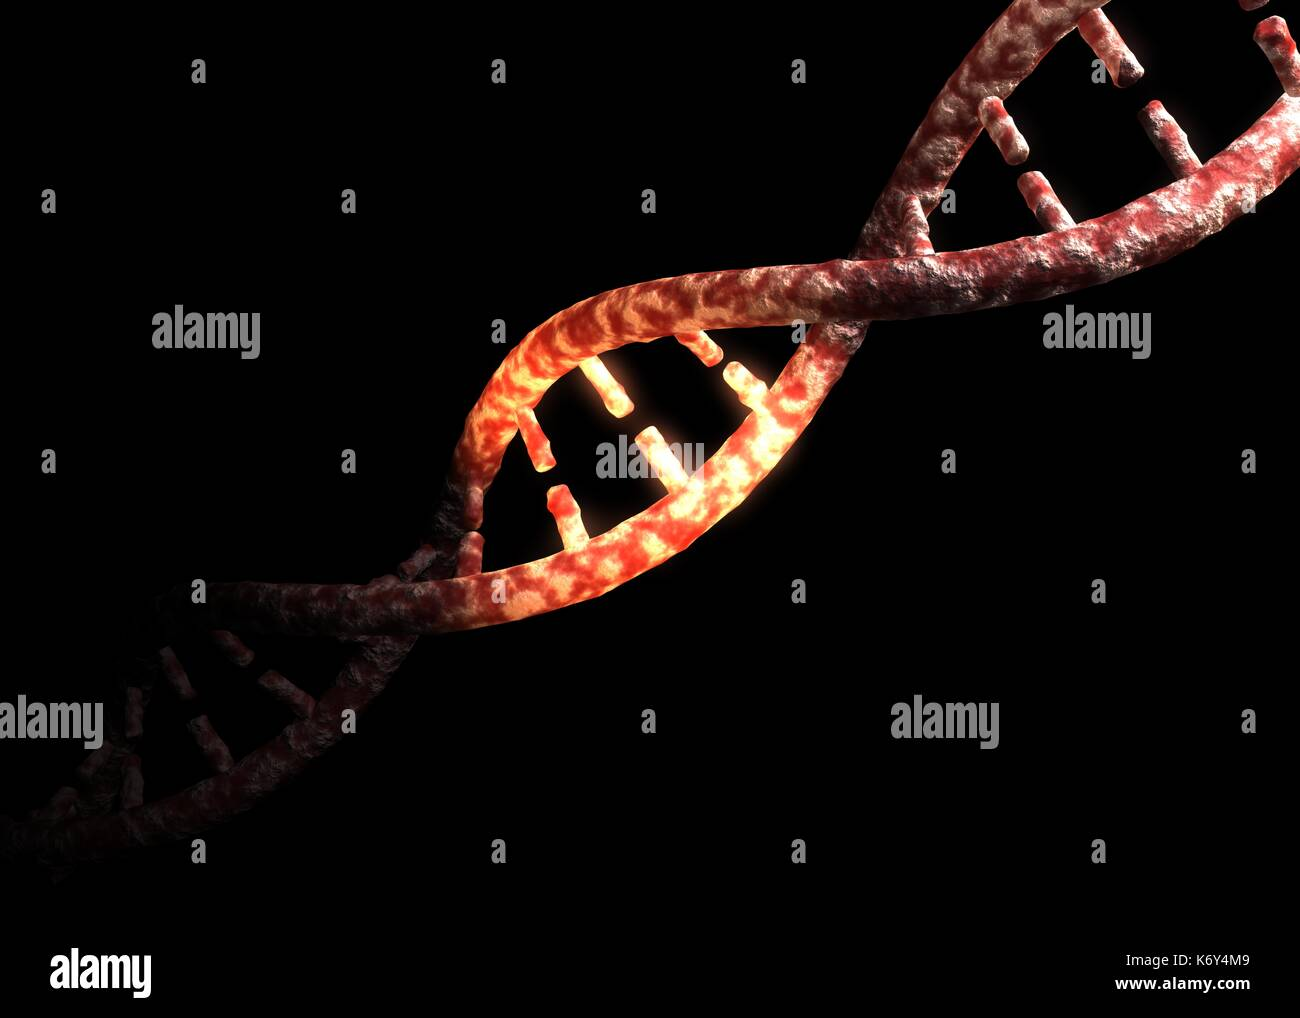 Glowing DNA Helix (Deoxyribonucleic Acid) concept gene/genome isolated on black background. - Stock Image